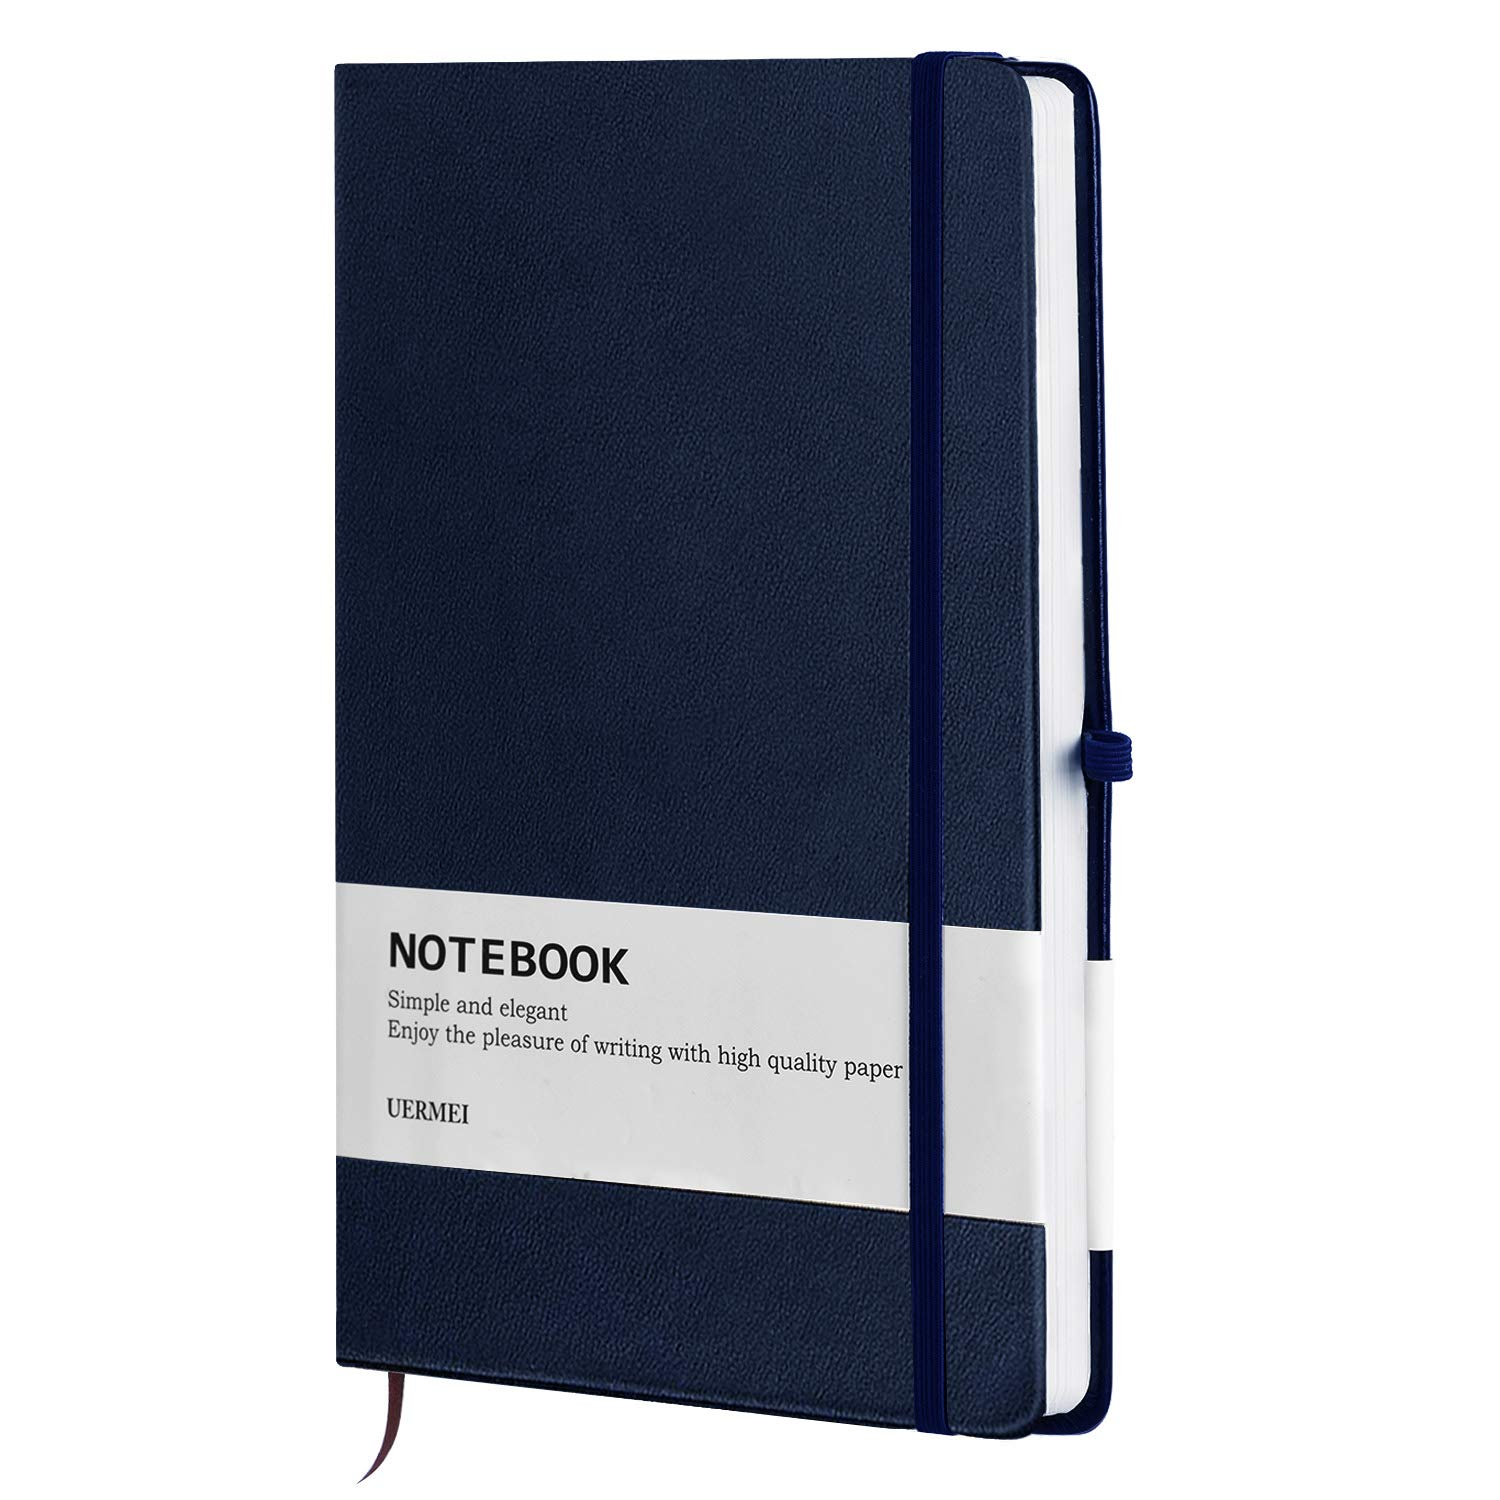 UERMEI A5 Ruled Hardcover Notebook/Journal with Pen Loop and PU Leather, Premium Thick Paper, 8.4 x 5.7 in, Blue